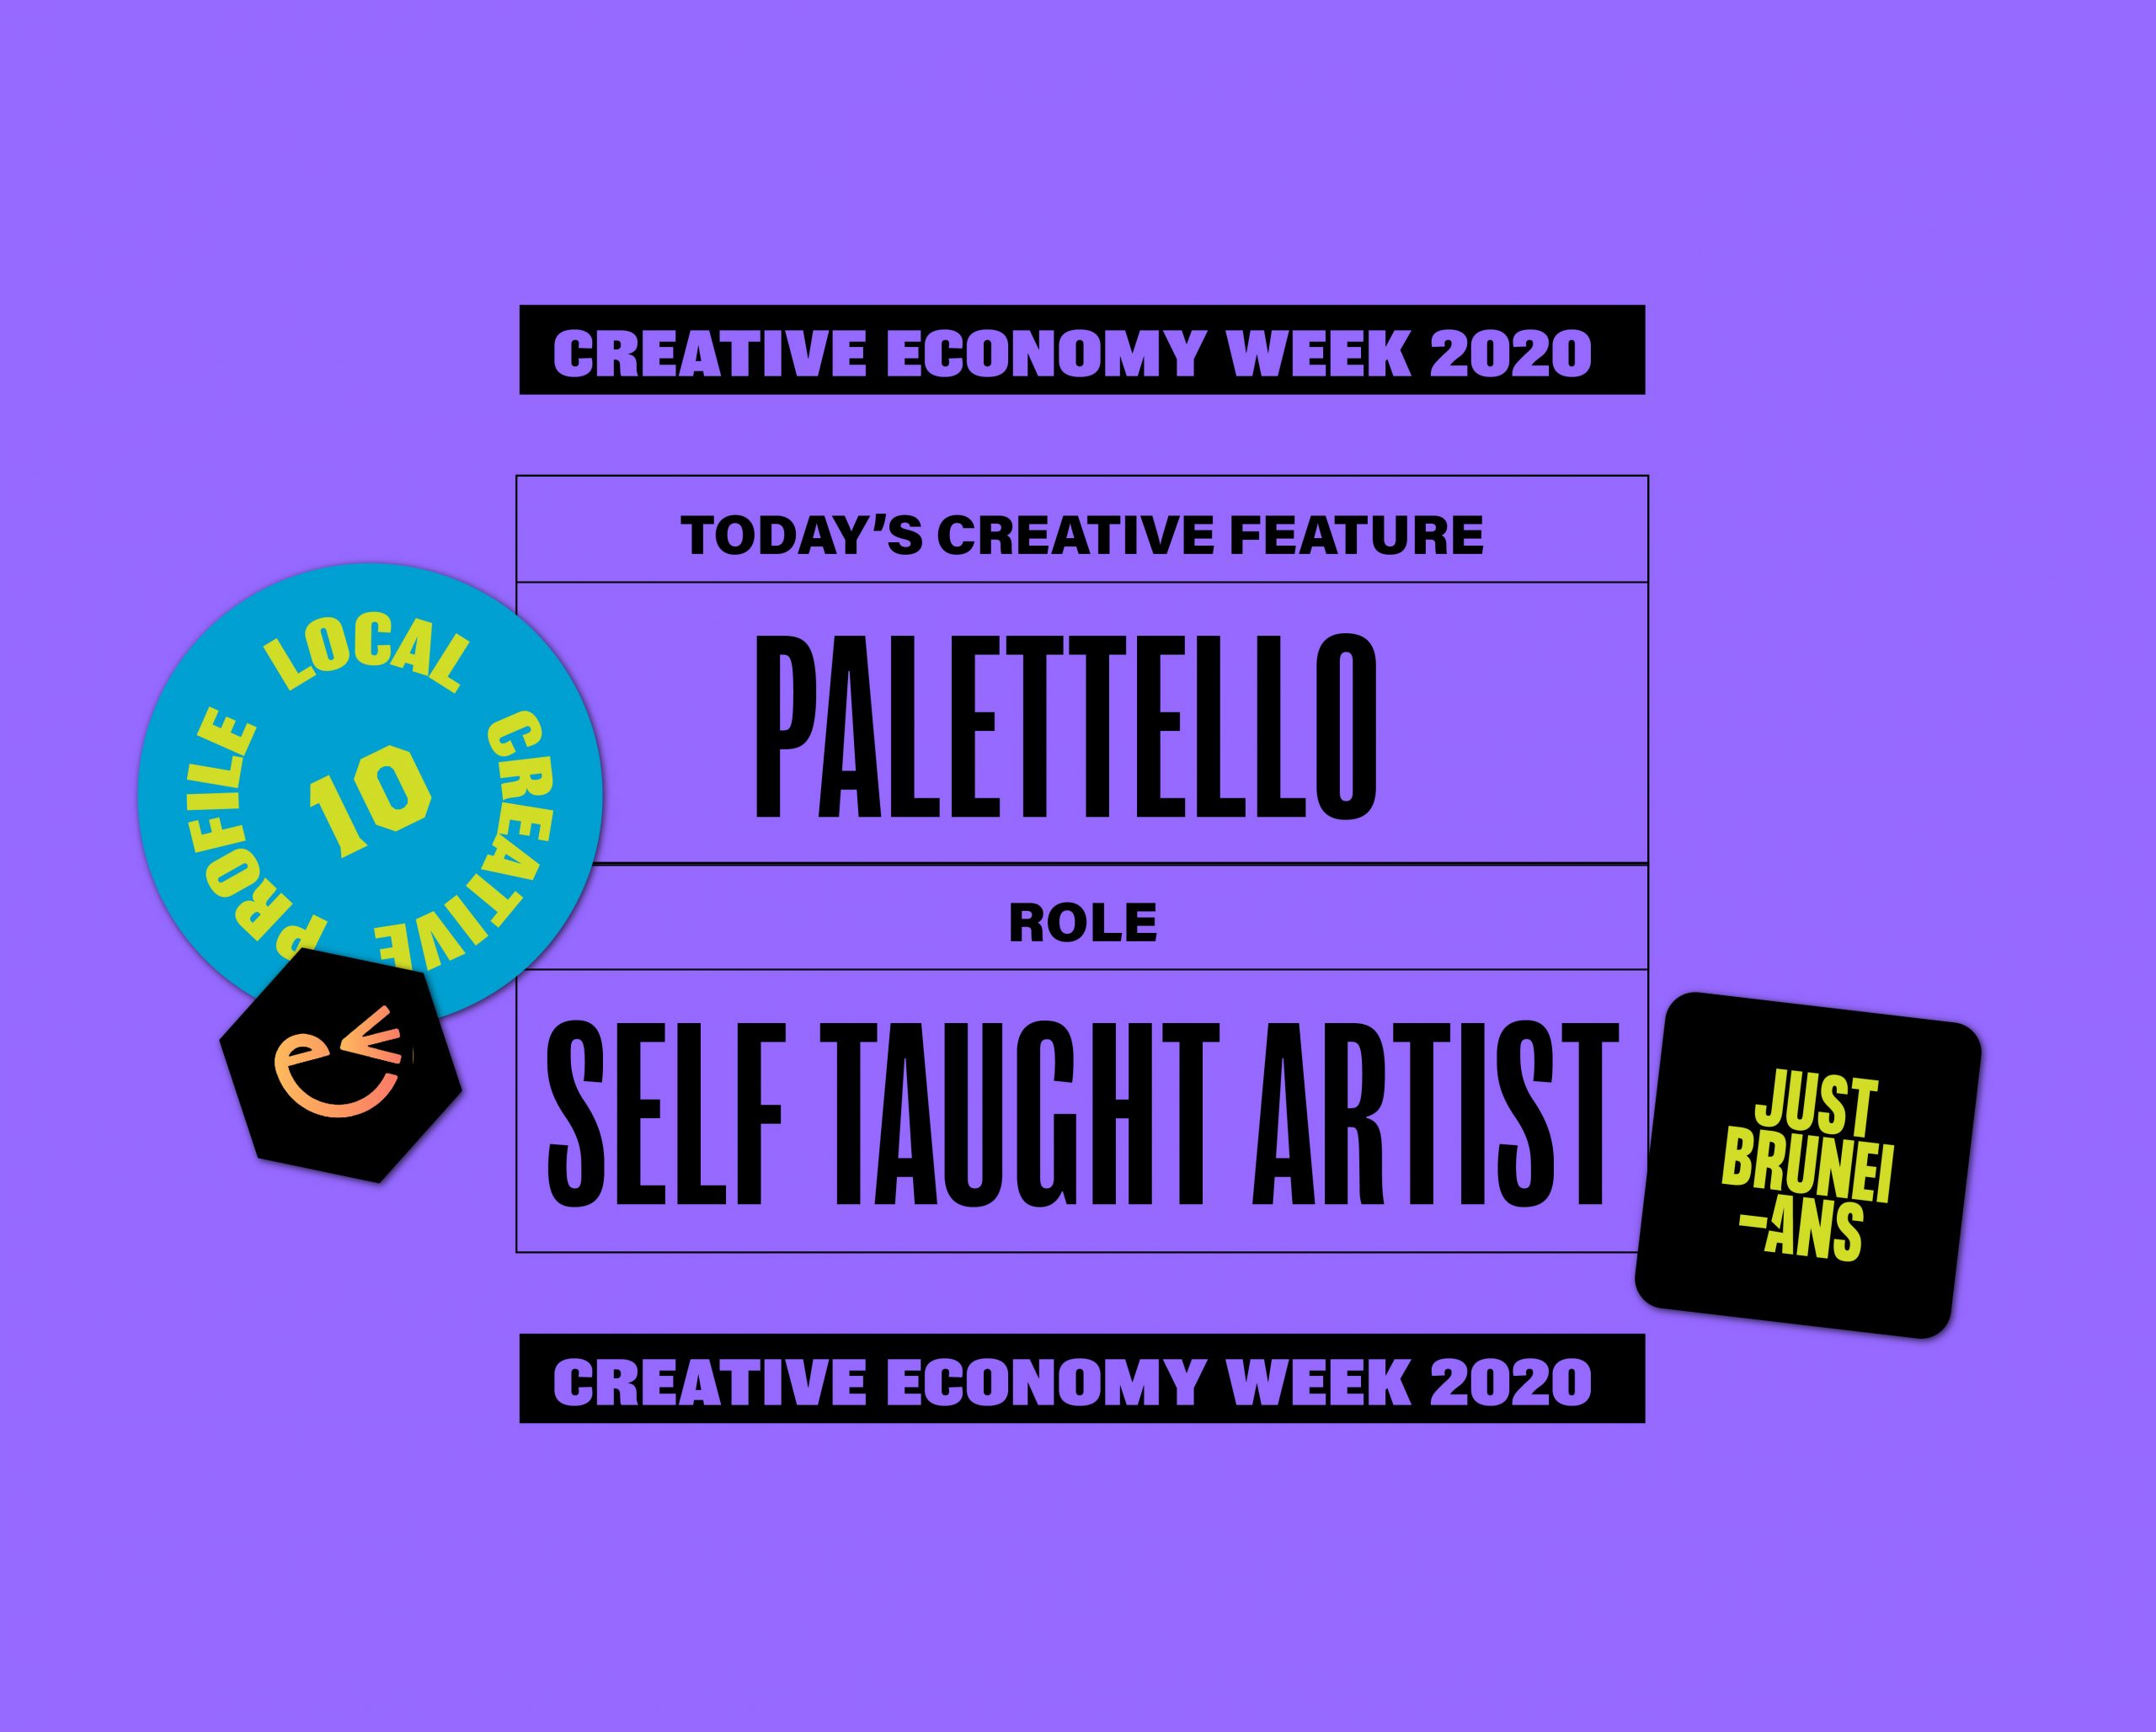 Today's Creative Feature: Palettello | Creative Economy Week 2020